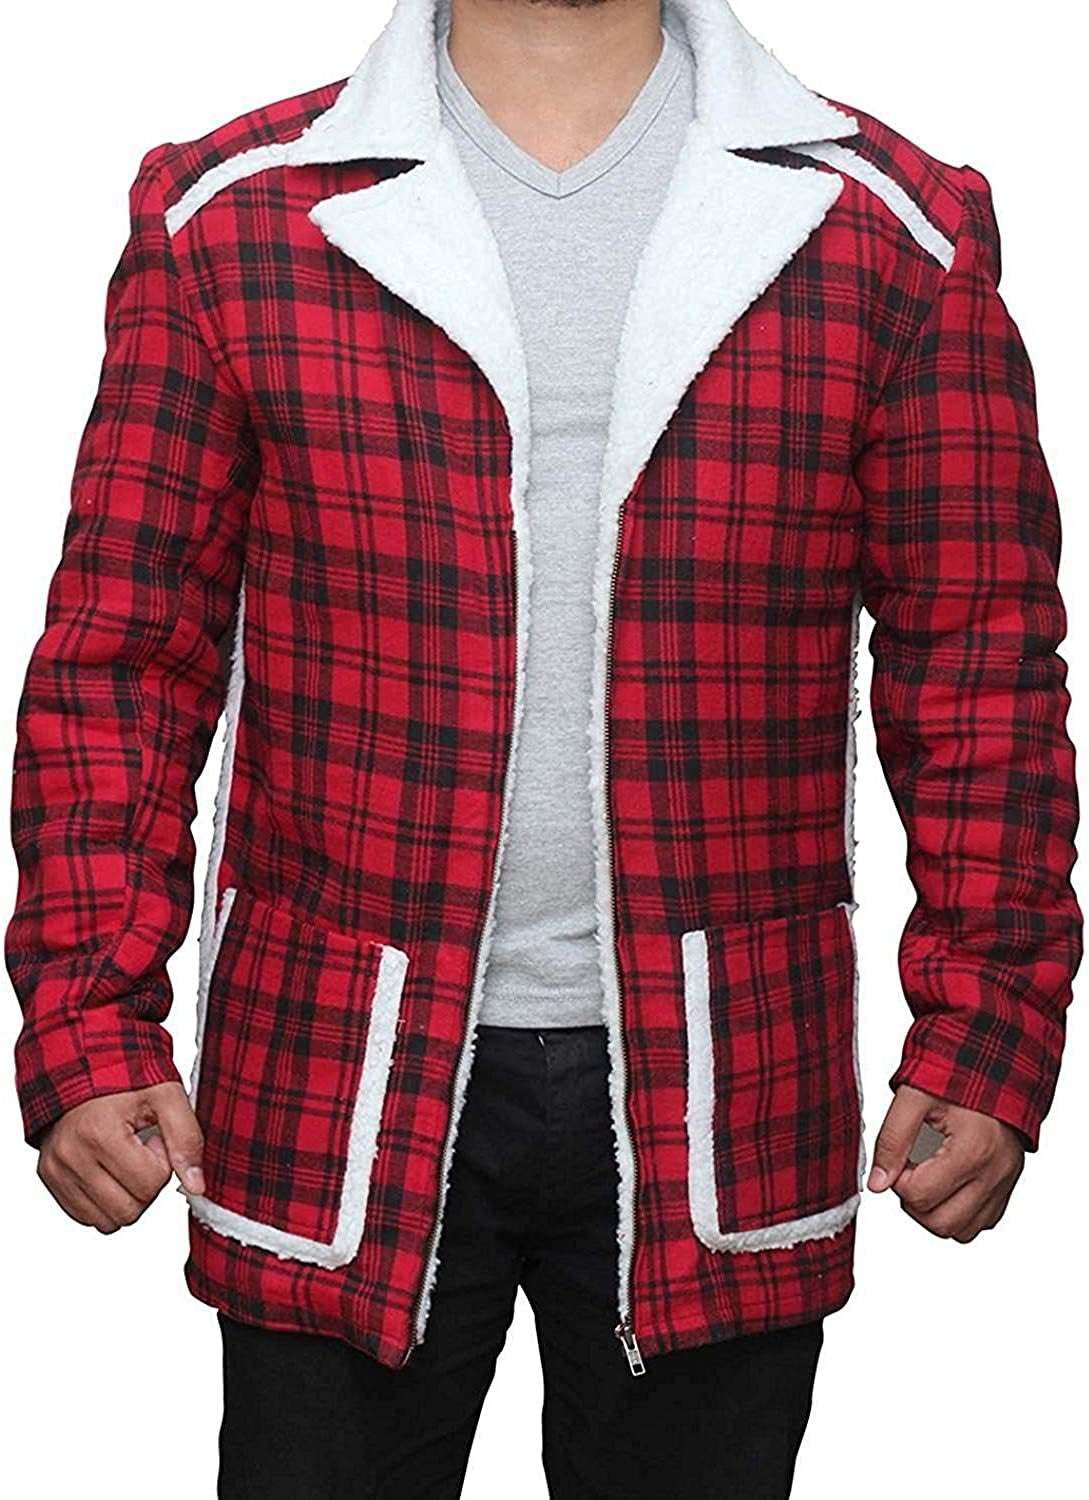 Red Faux Fur Flannel Jacket - Checkered Style Shearling Coat for Men